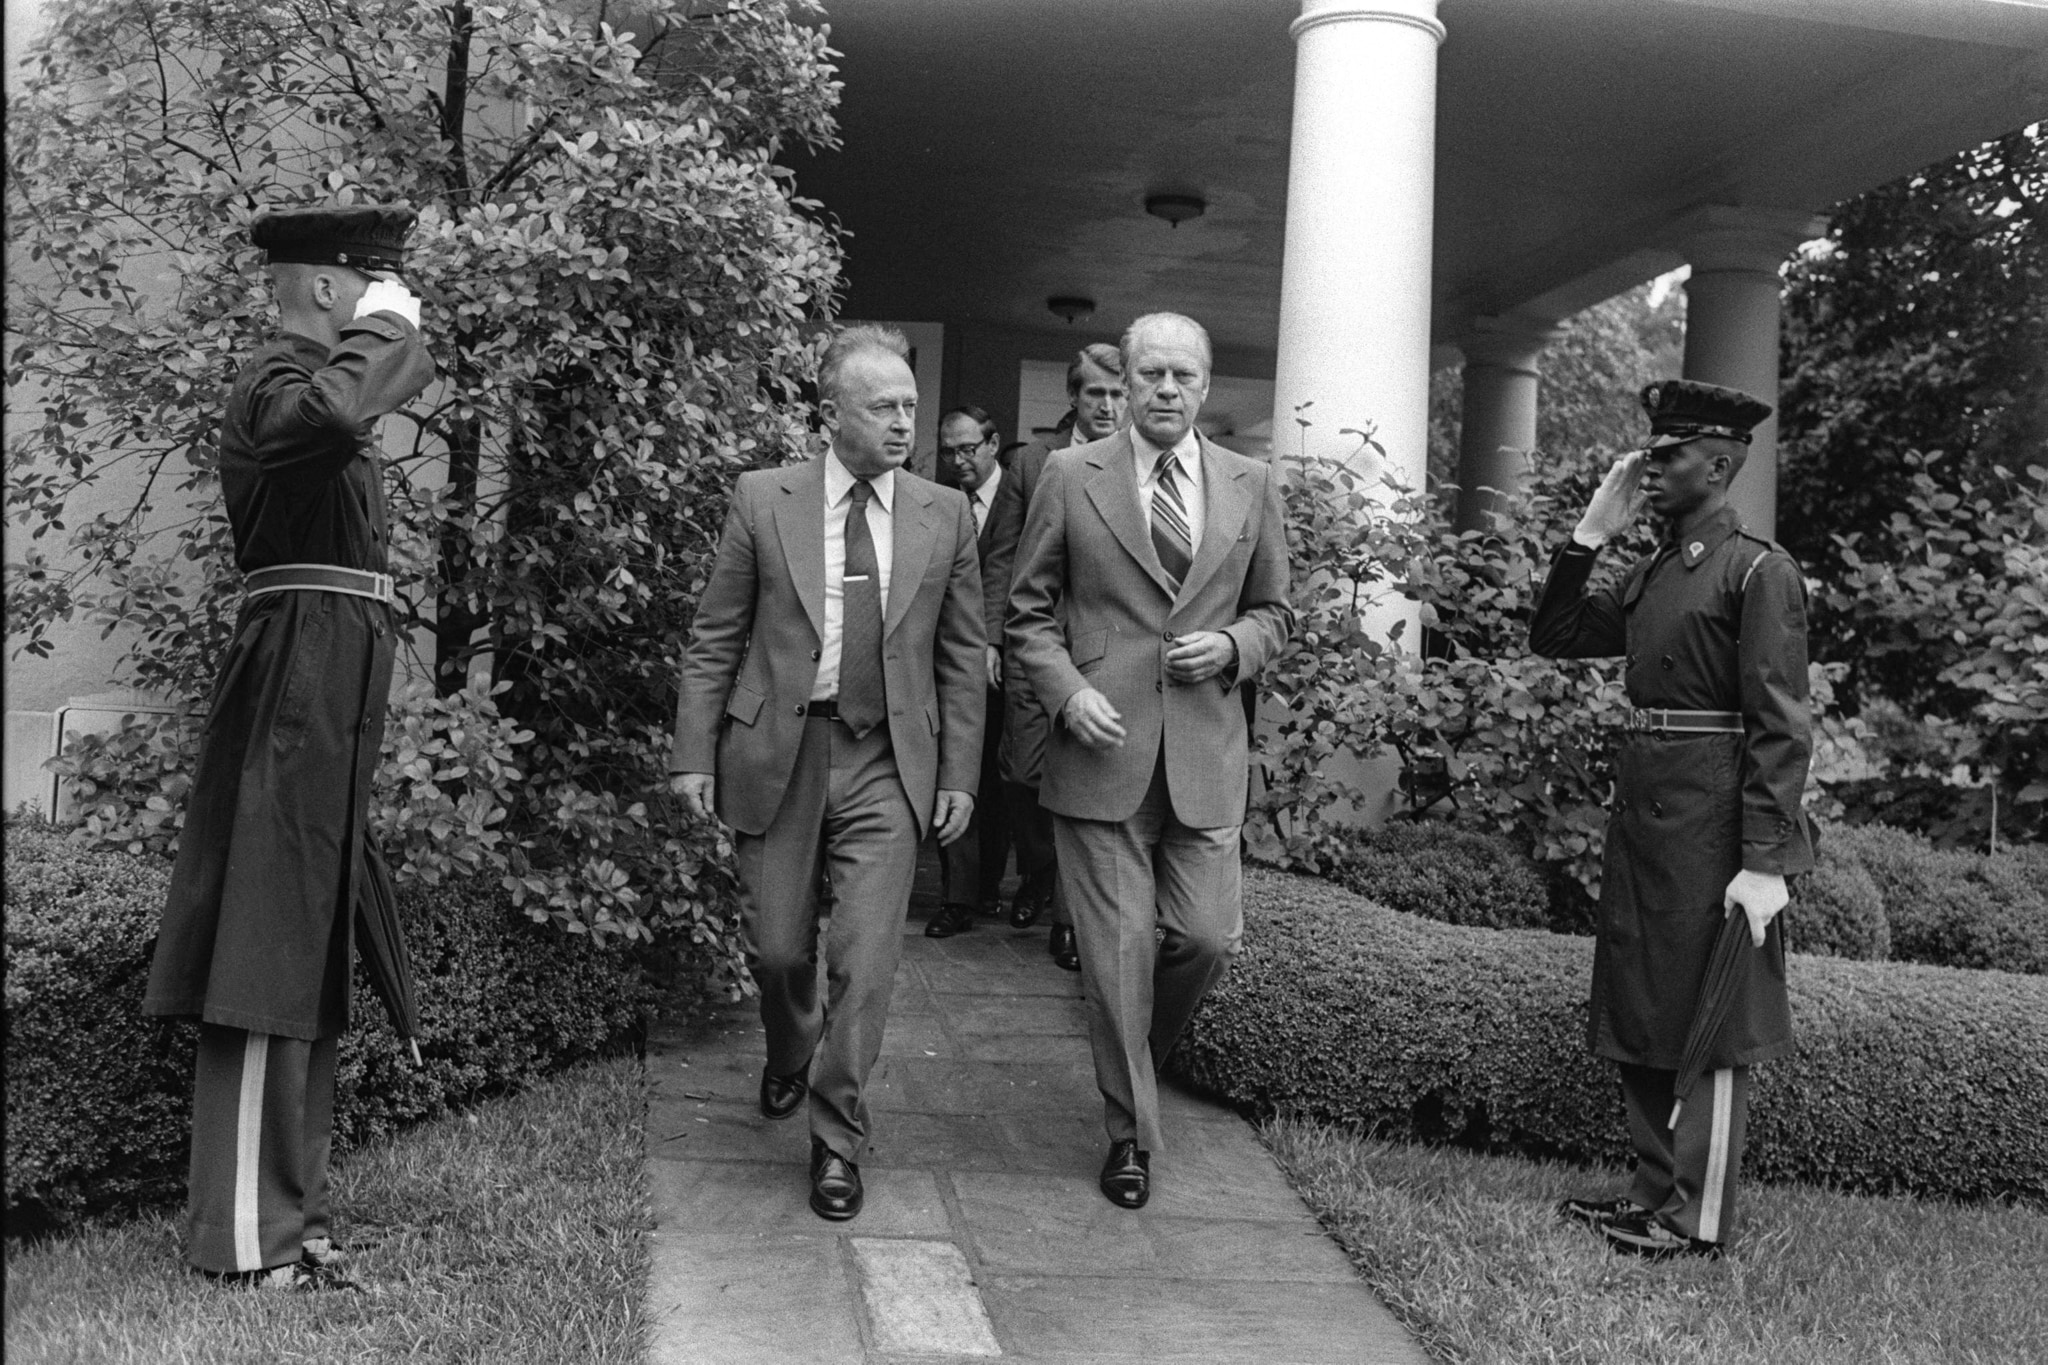 President Ford and others walking out of White House past two saluting men in uniform (State Dept.)